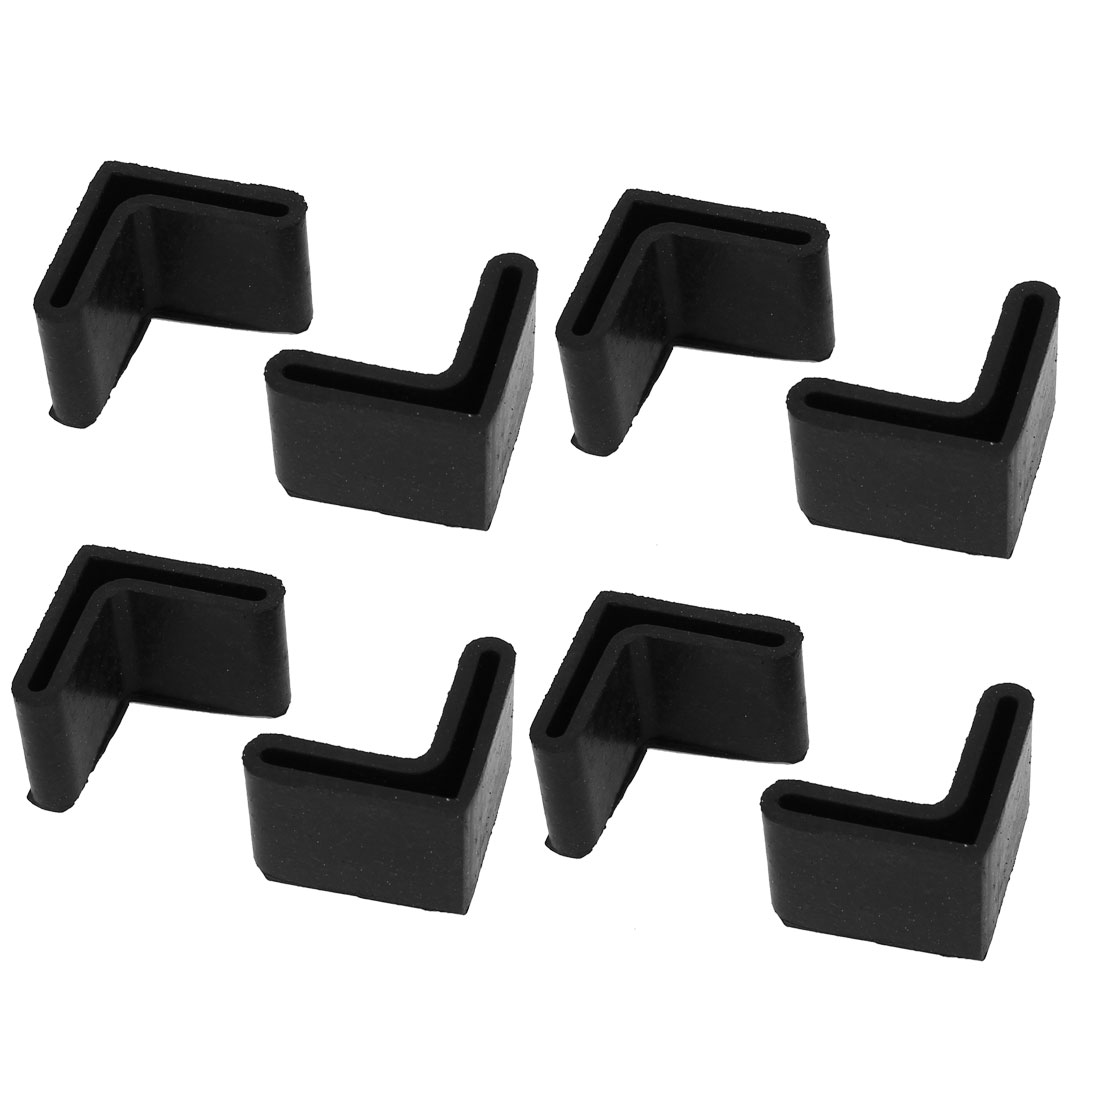 28mm x 28mm L Shaped Furniture Angle Iron Rubber Foot Leg Cover Black 8PCS